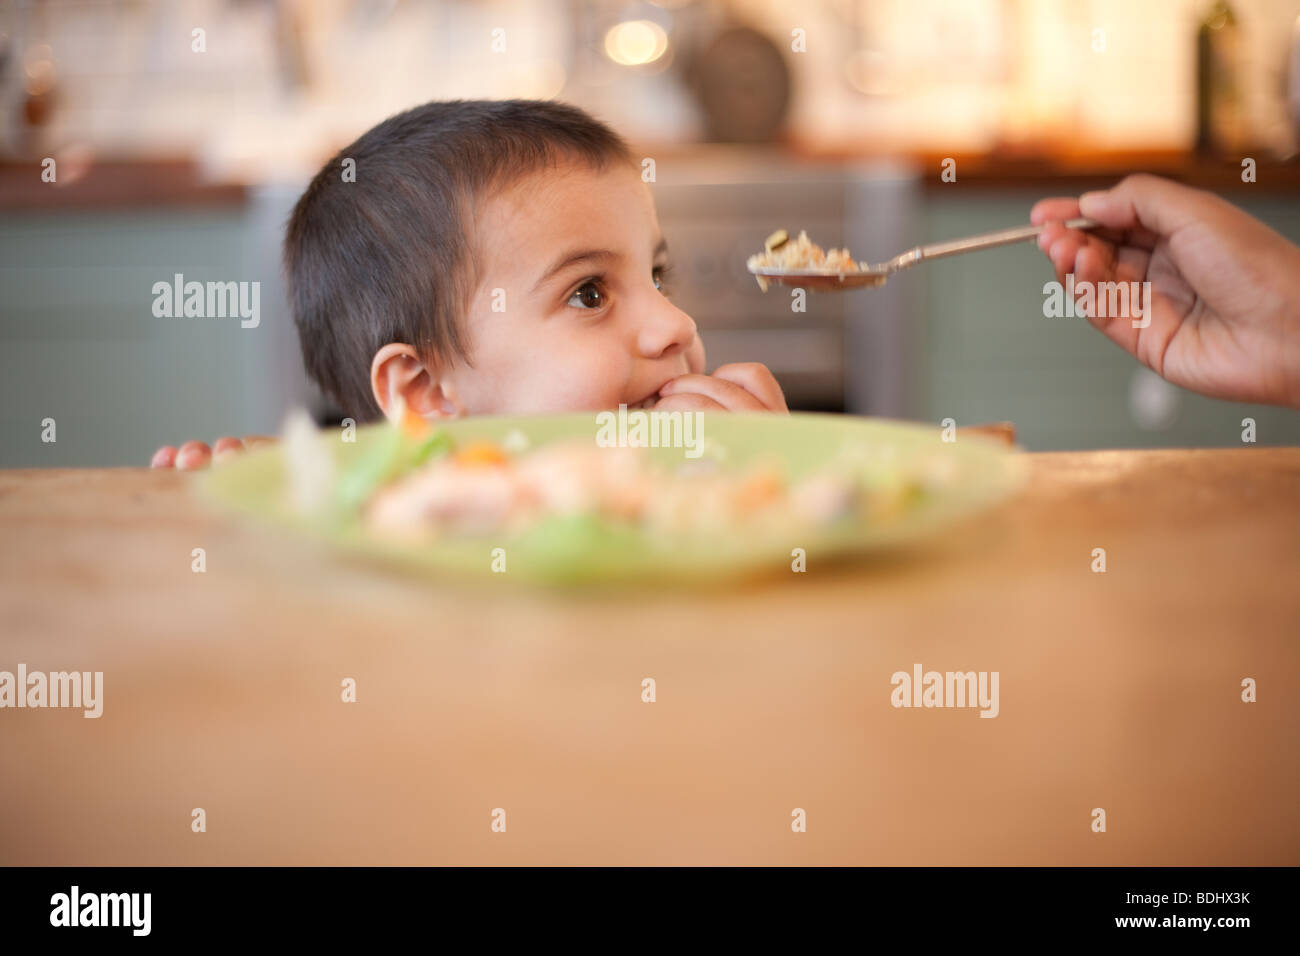 3 year old boy sitting at table with hand holding food on spoon - Stock Image